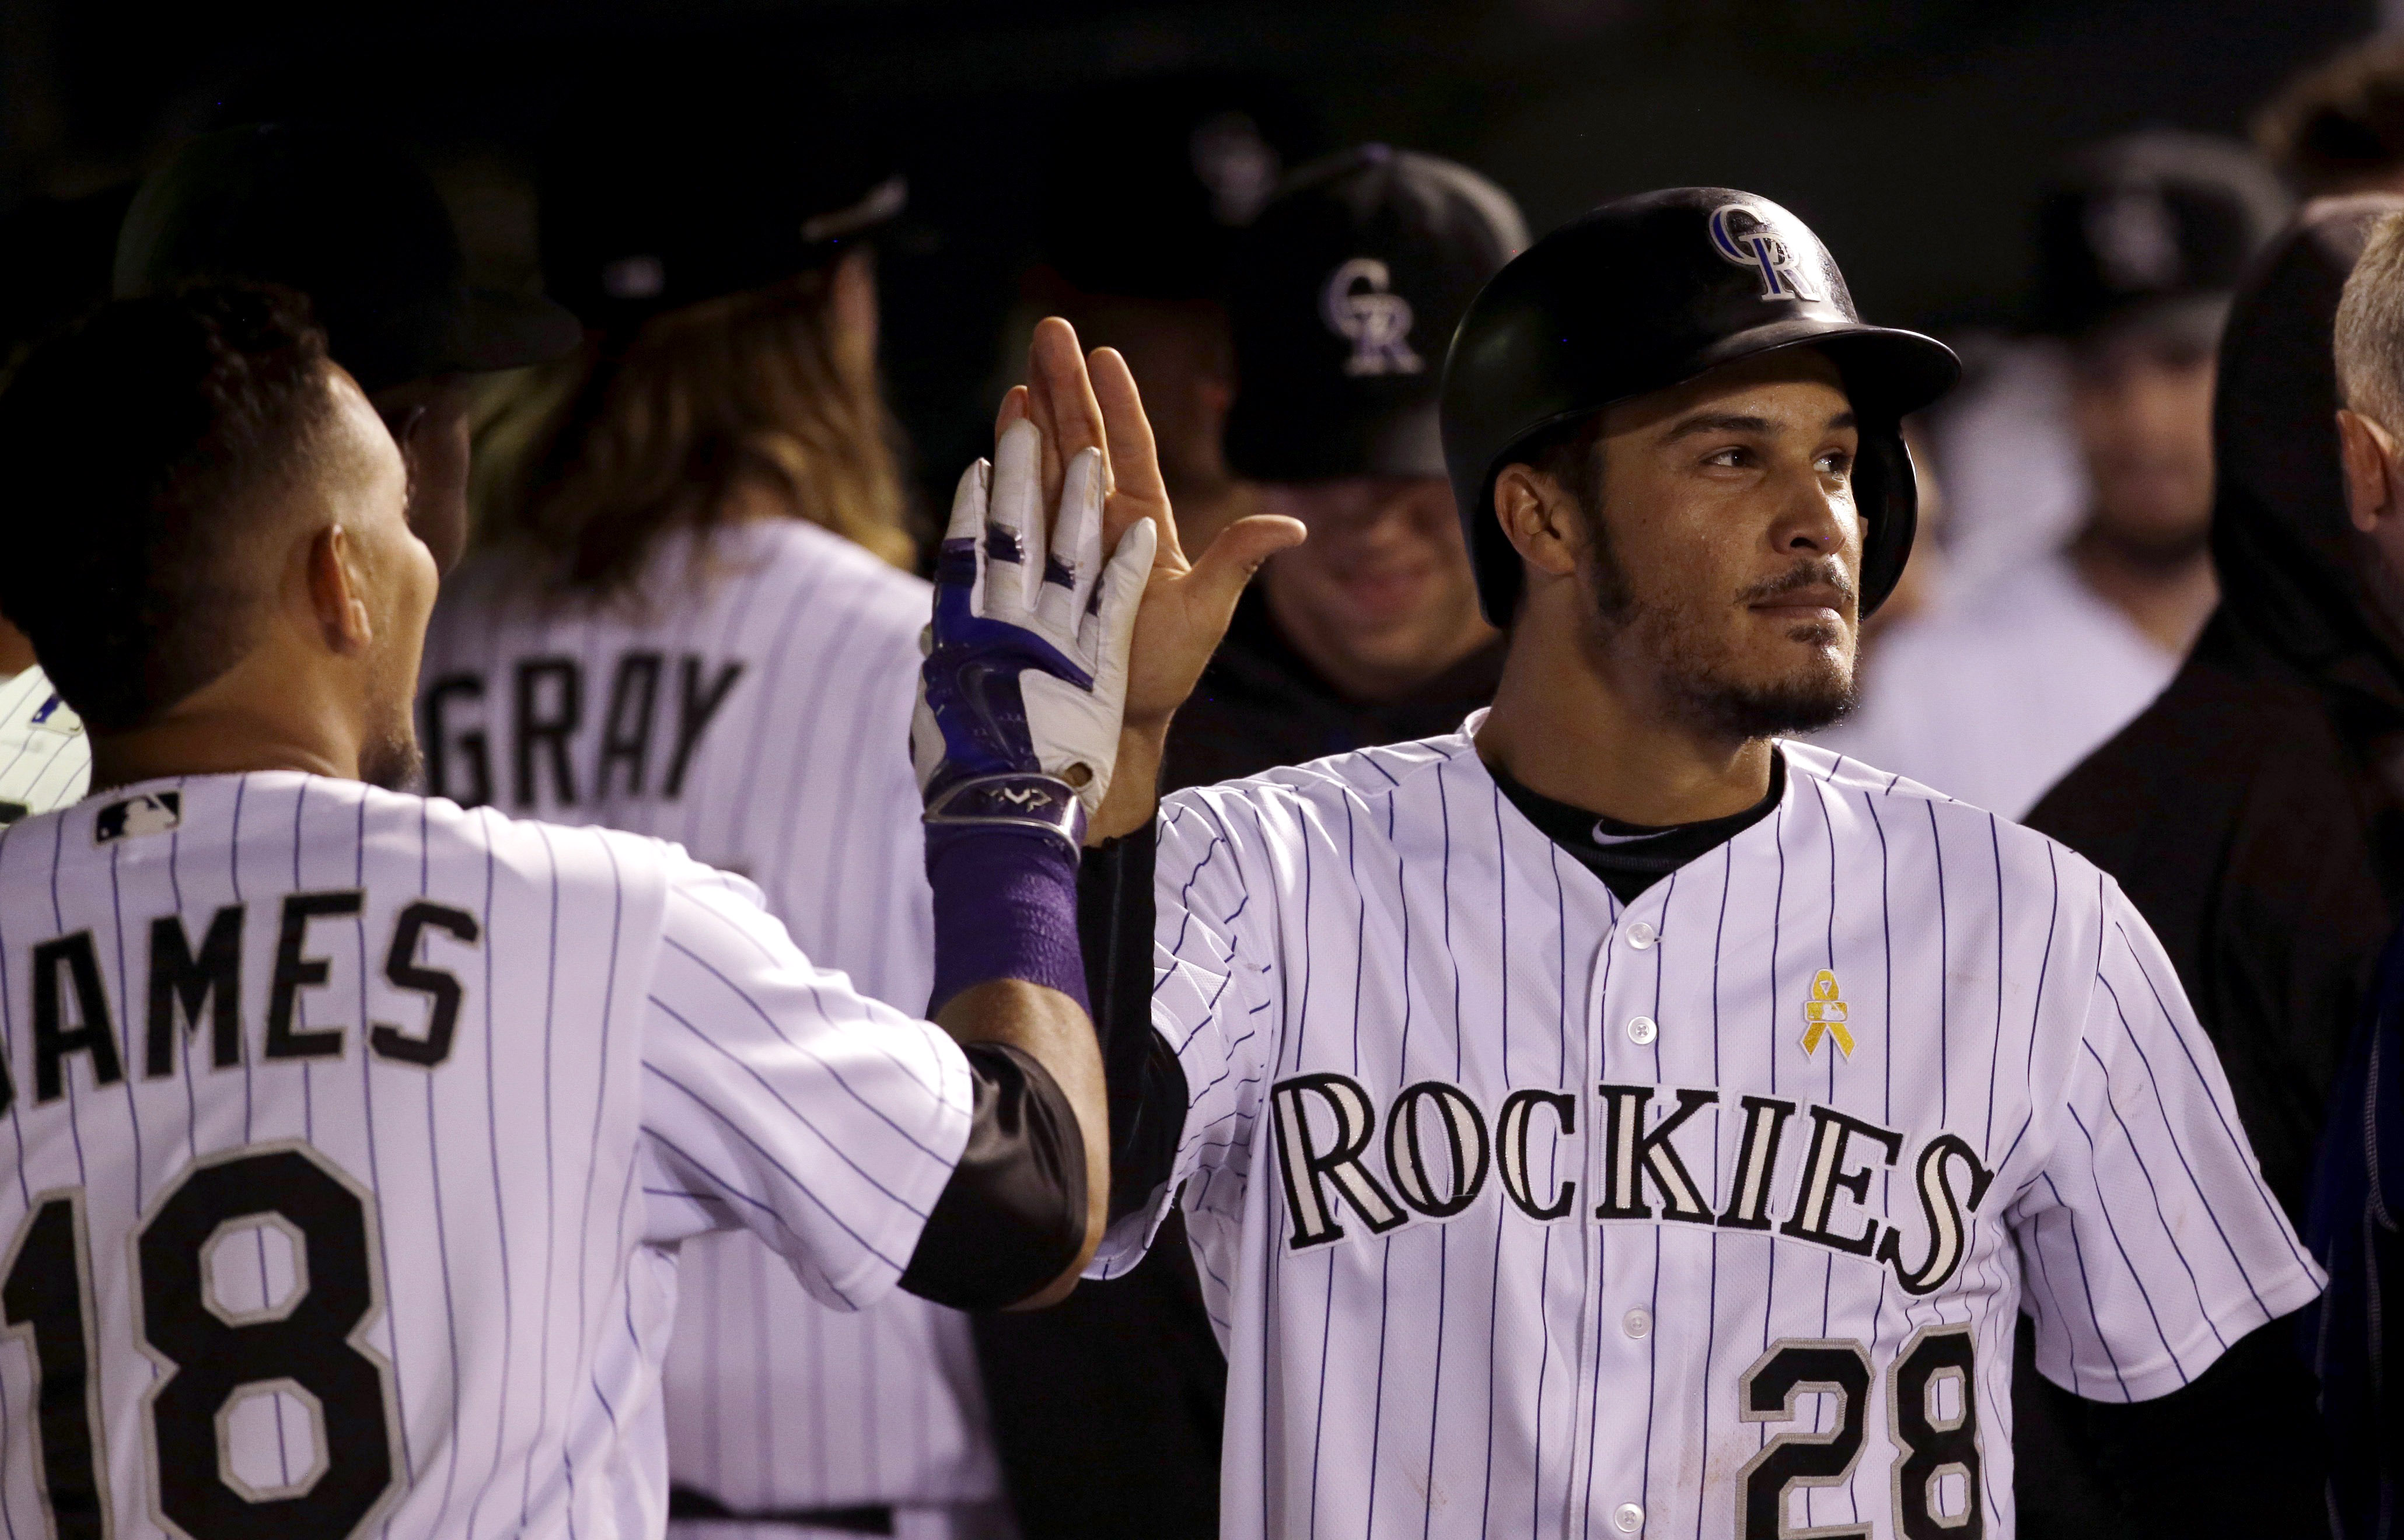 Cristhian Adames #18 of the Colorado Rockies congratulates Nolan Arenado #28 of the Colorado Rockies after Arenado scored in the fourth inning against the Arizona Diamondbacks during a baseball game at Coors Field on September 2, 2016 in Denver, Colorado. (Photo by Joe Mahoney/Getty Images)